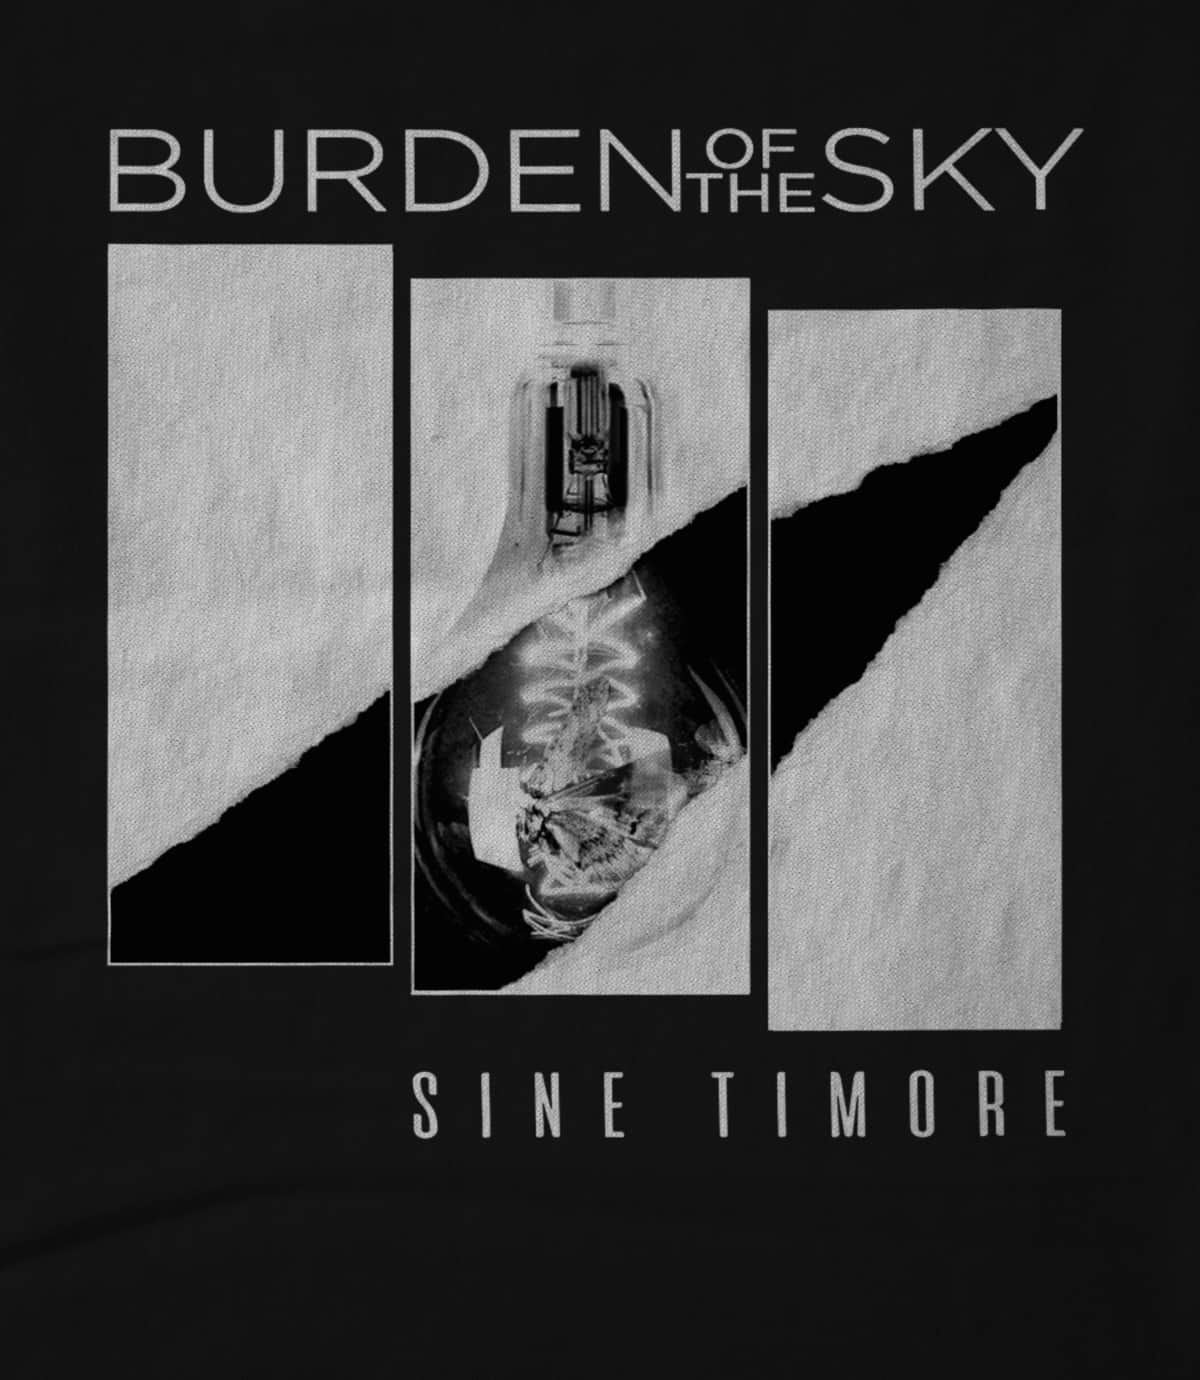 Burden of the sky sine timore red 1556256684